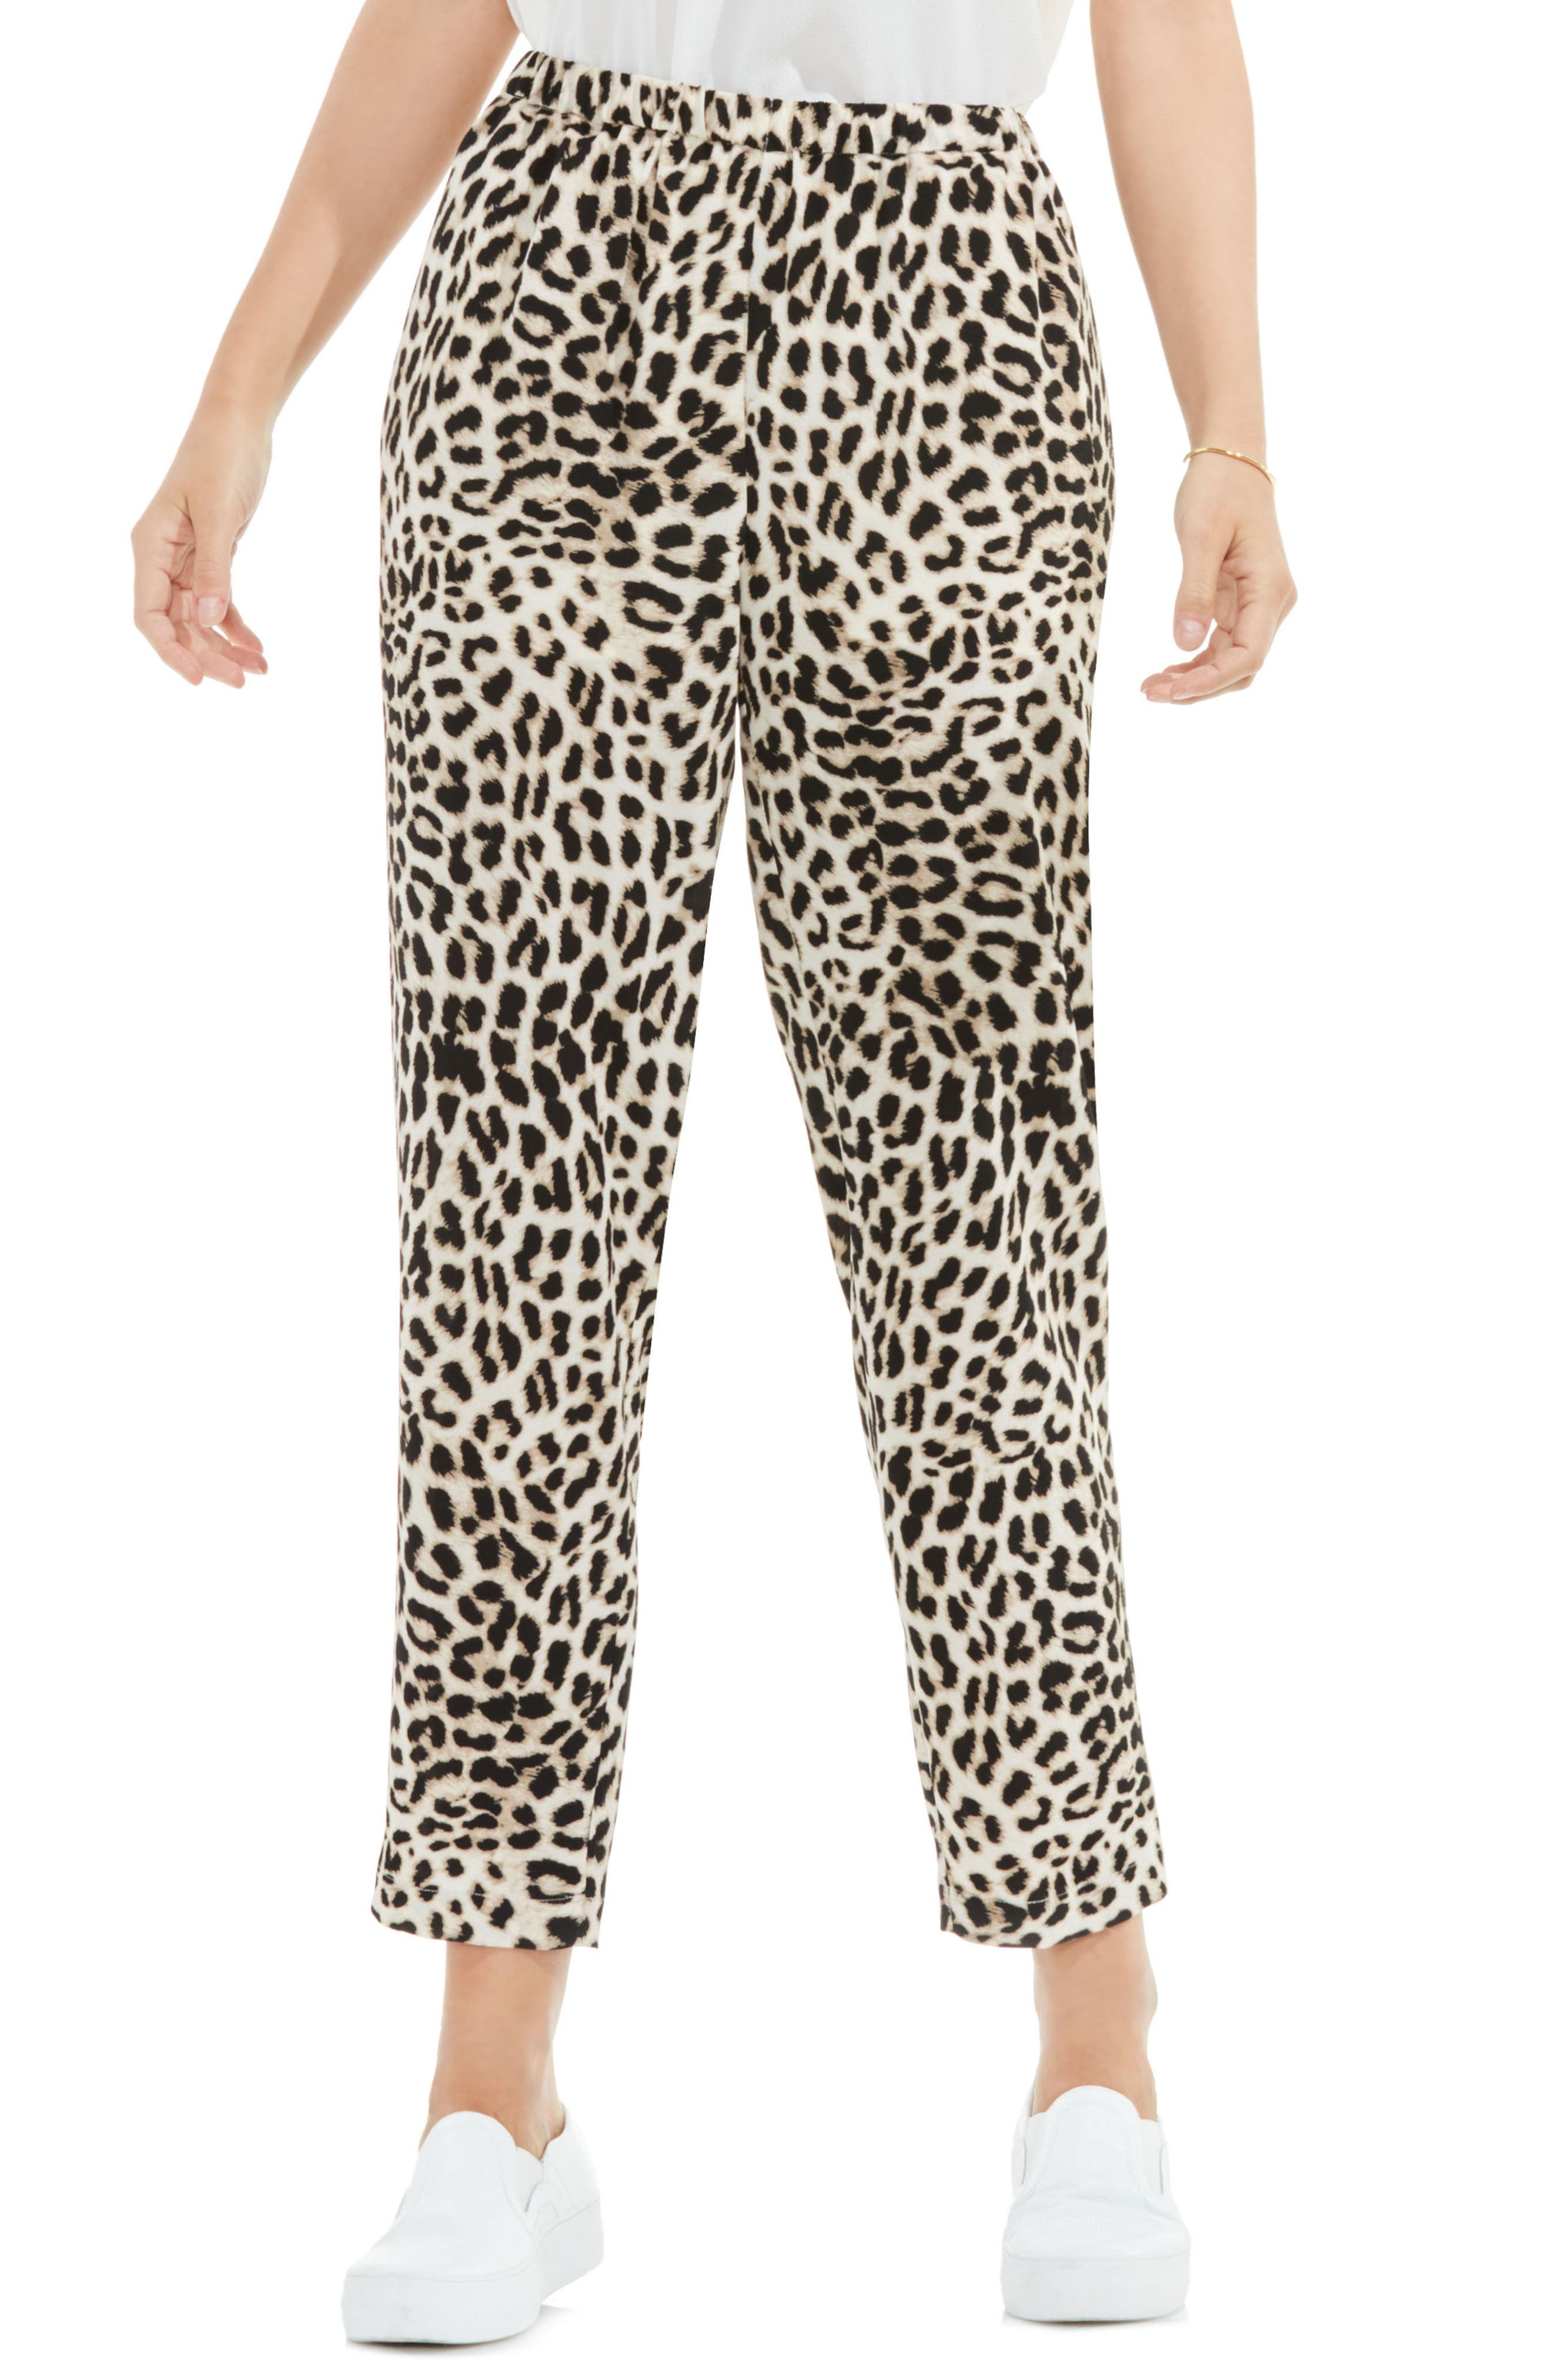 Vince Camuto Leopard Song Pull-On Slim Leg Pants